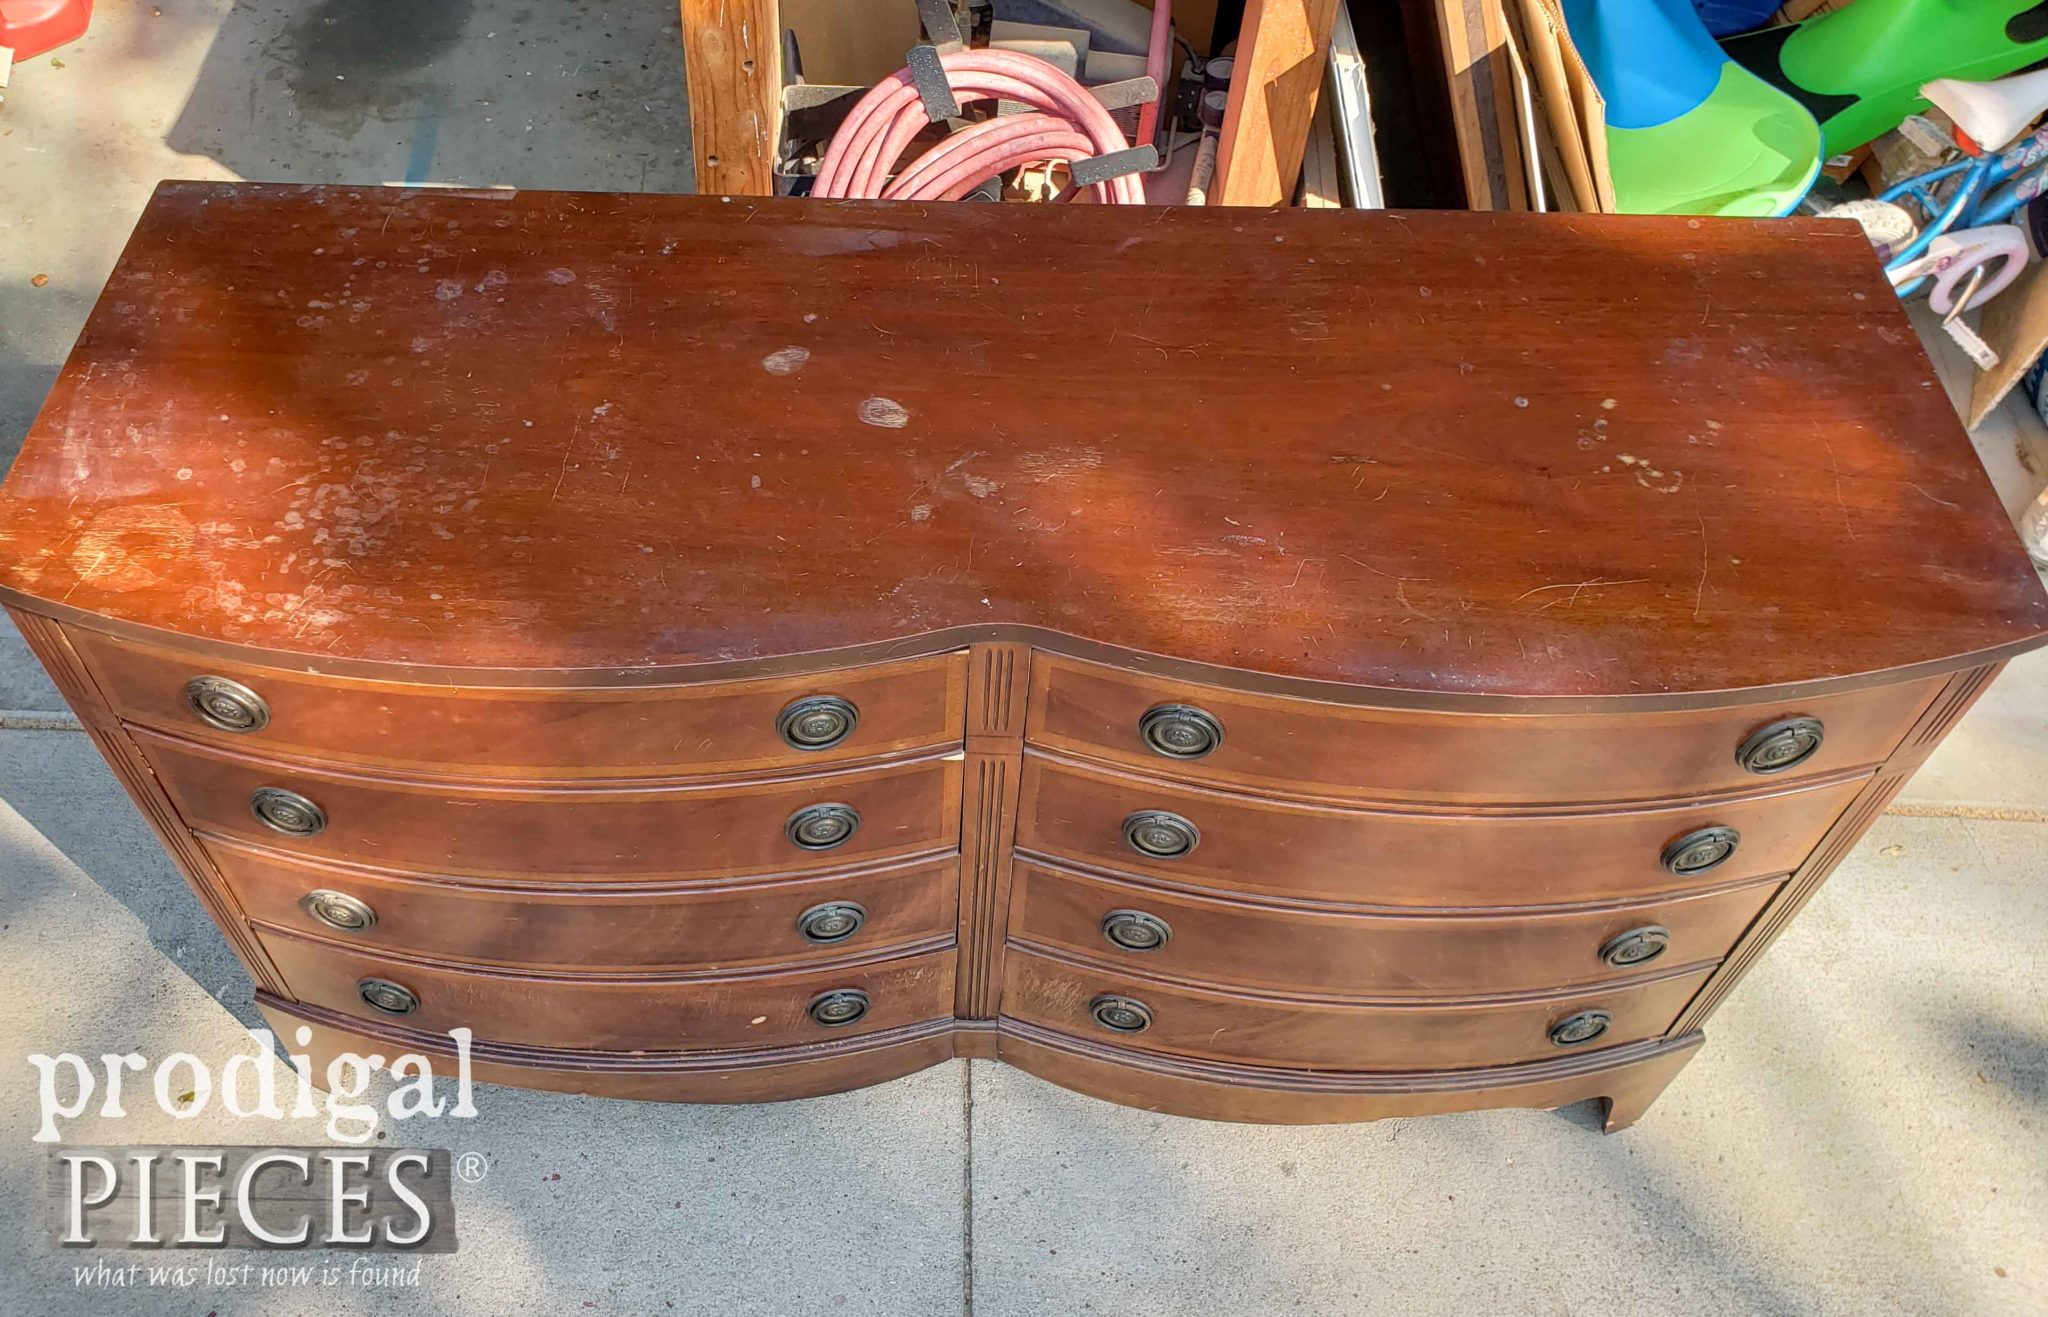 Top of Vintage Dixie Dresser with Damage | prodigalpieces.com